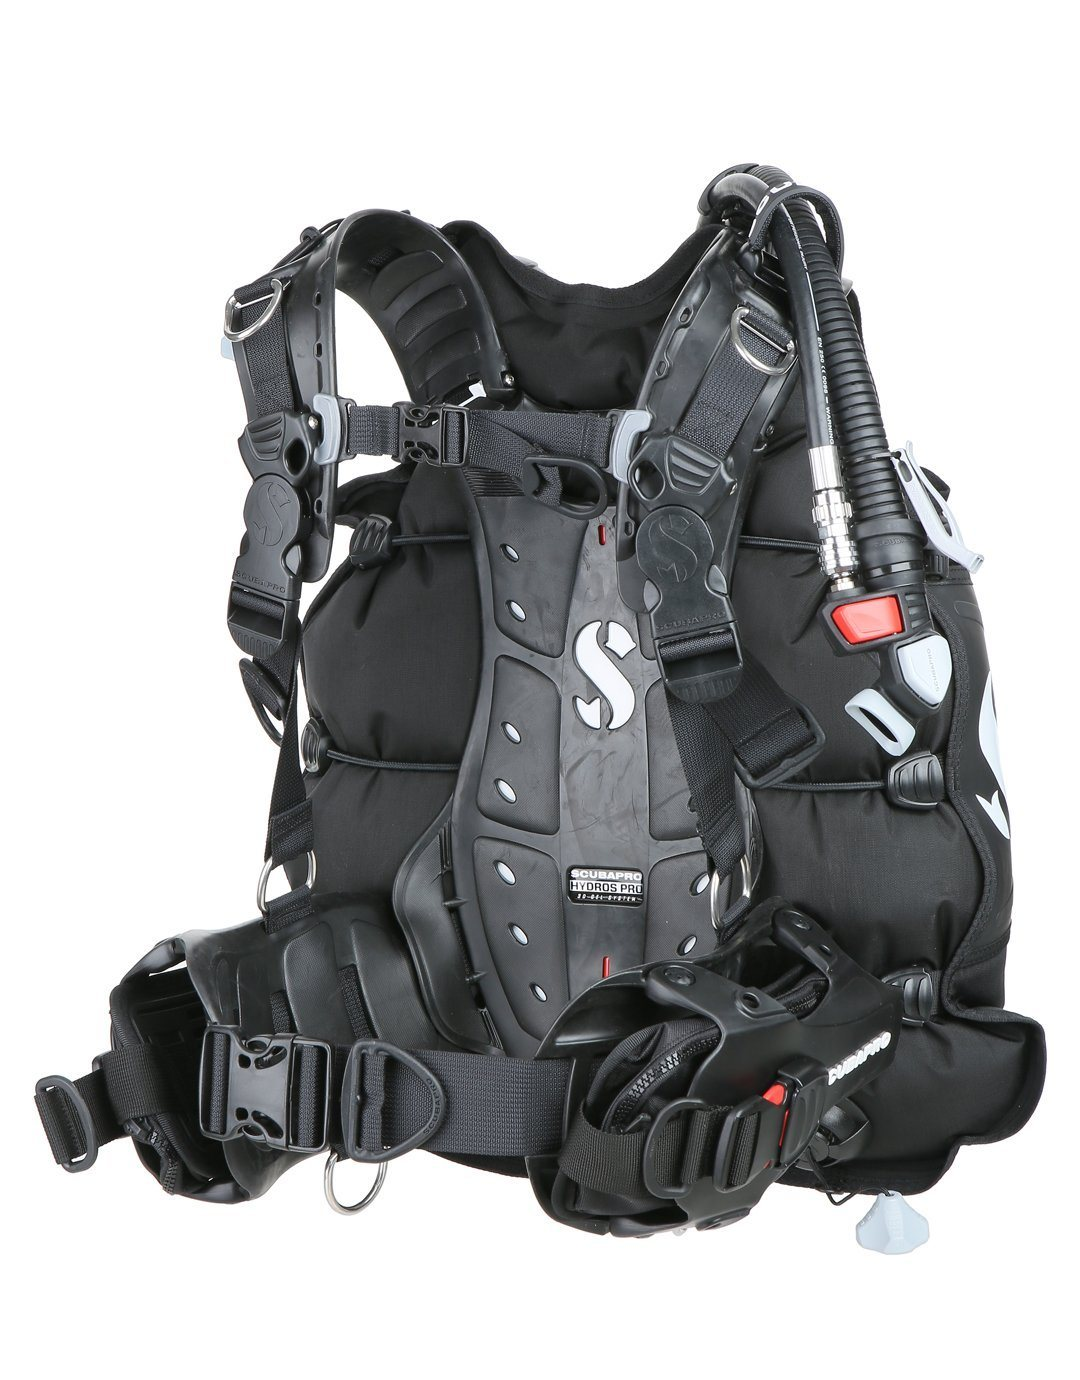 scubapro buoyancy control device